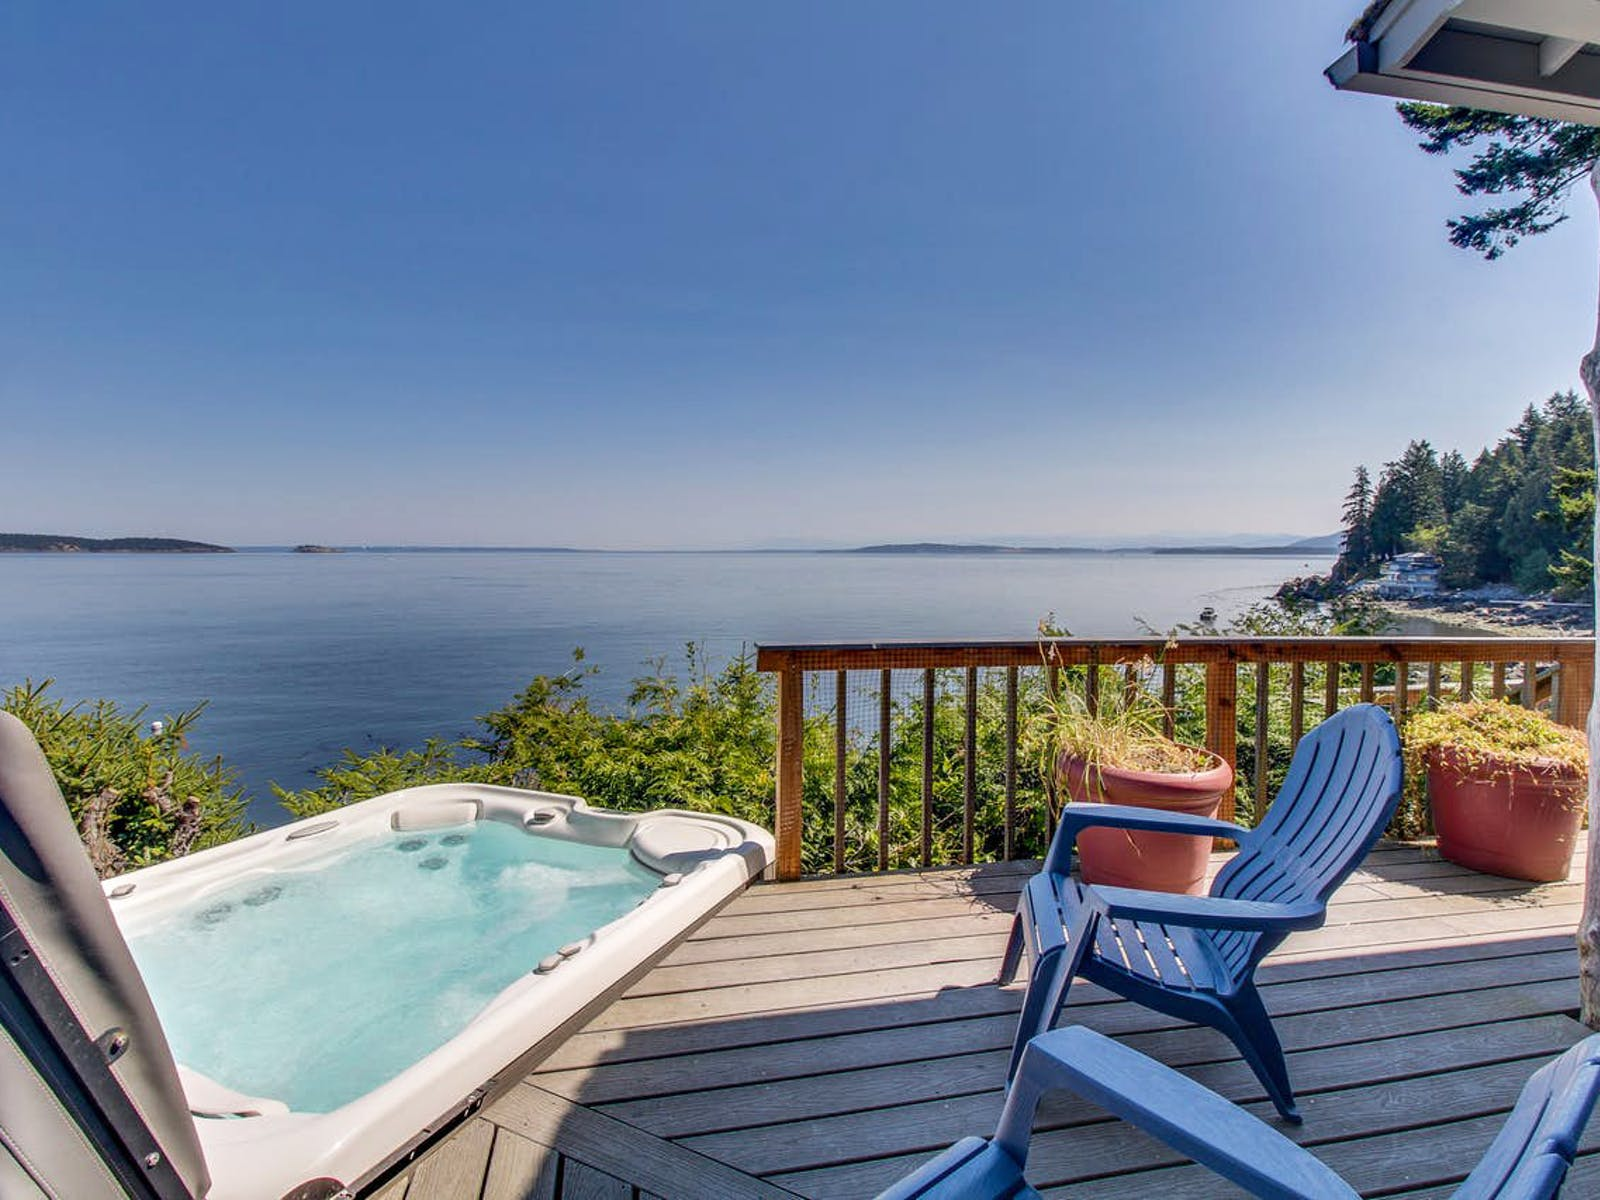 waterfront vacation rental with private hot tub in Eastsound, WA